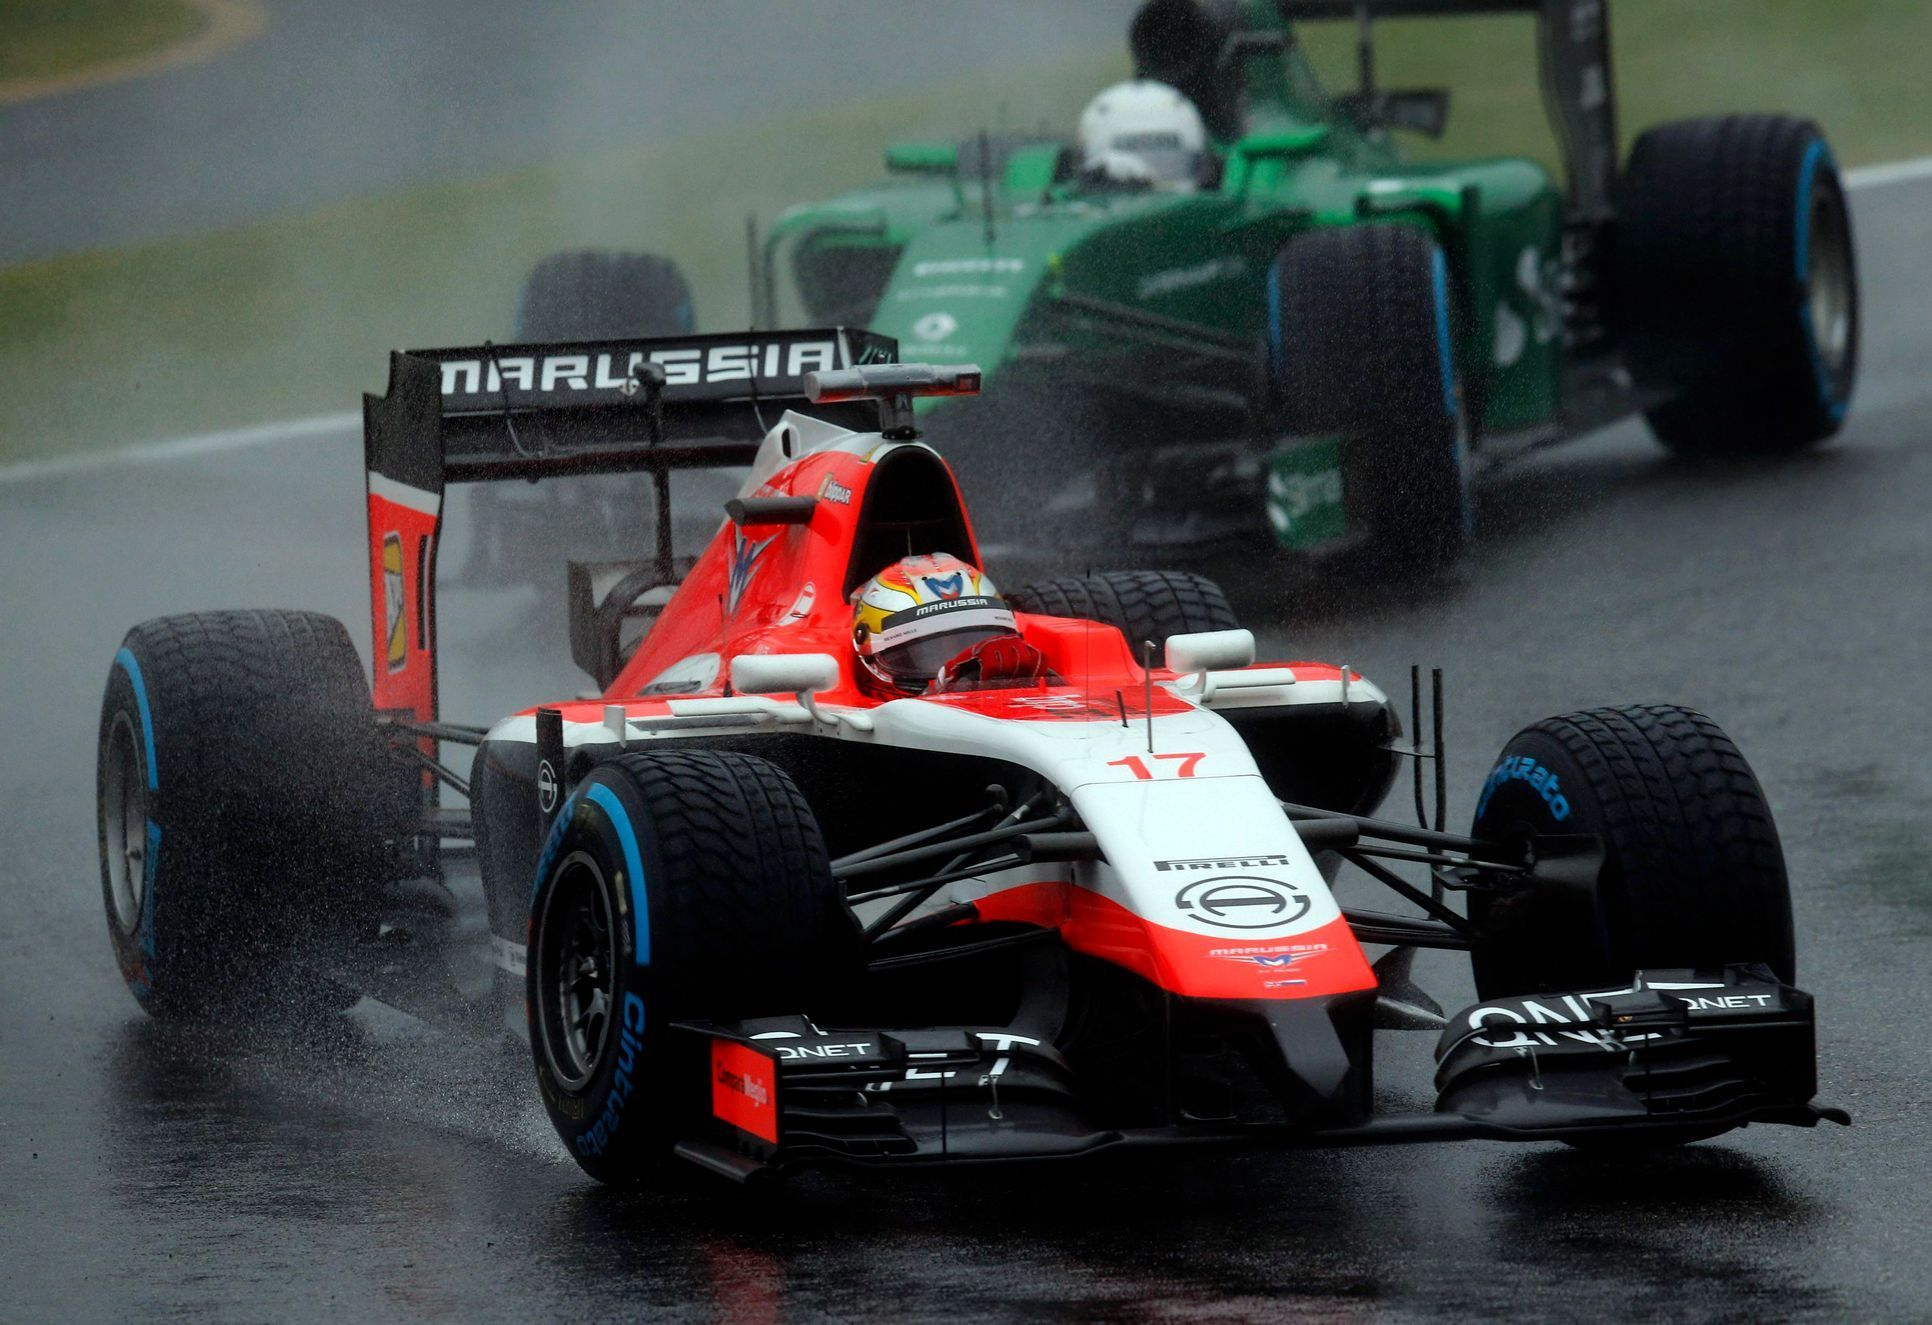 Marussia Formula One driver Bianchi of France drives in front of Caterham Formula One driver Kobayashi of Japan during the Japanese F1 Grand Prix at the Suzuka Circuit